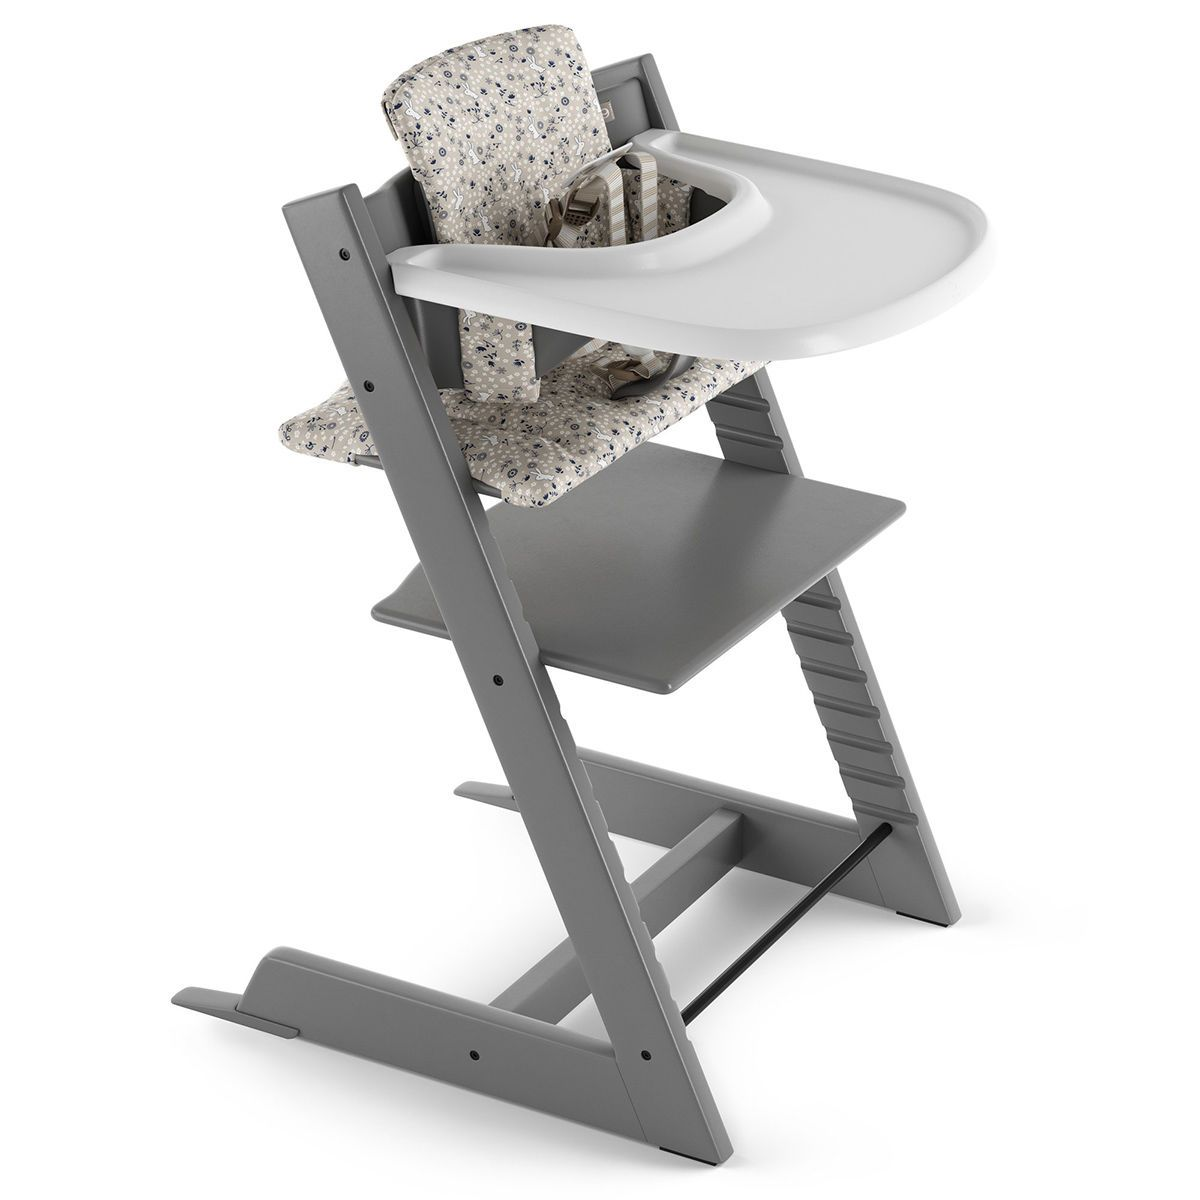 Stokke Tripp Trapp Complete in Storm Grey finish with Garden Bunny